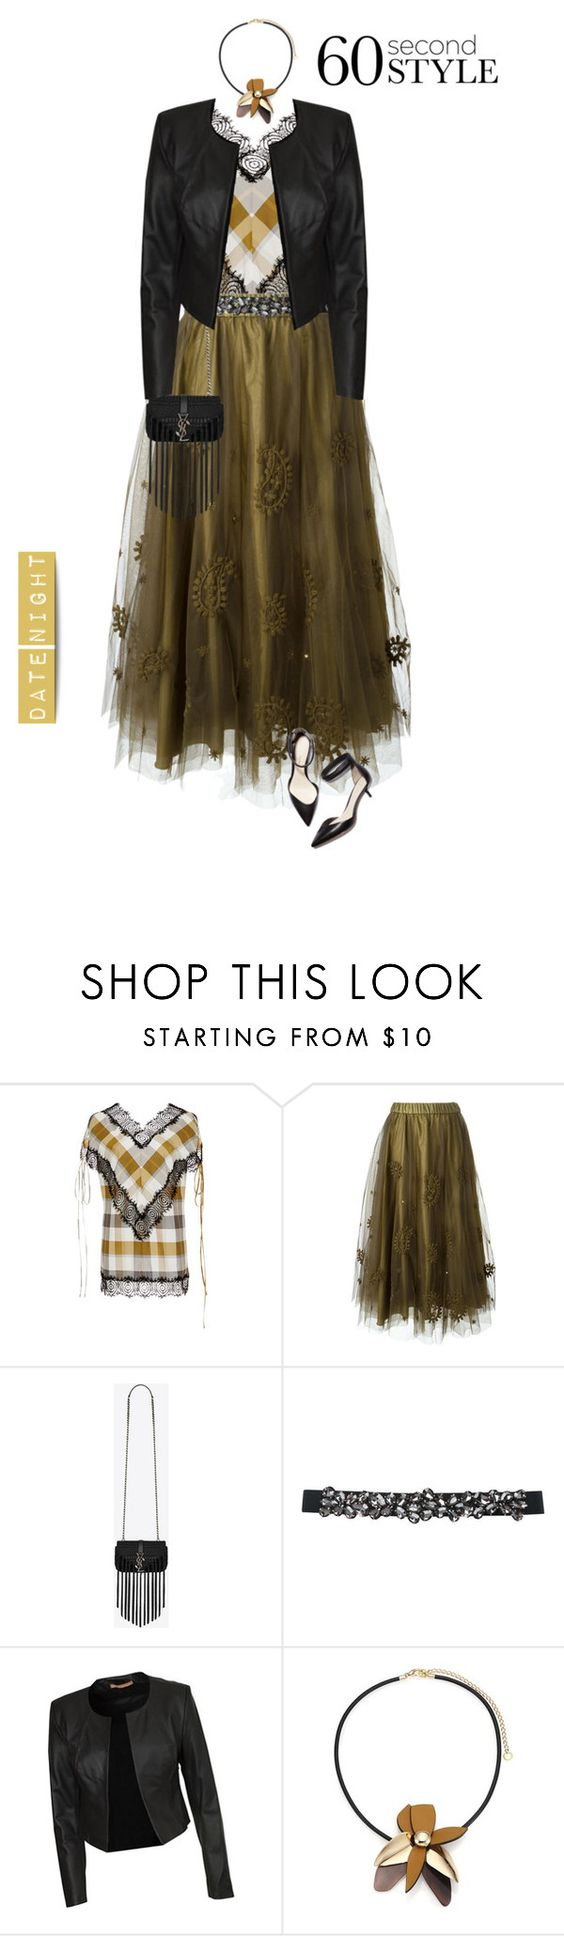 """Untitled #603"" by modernmoda ❤ liked on Polyvore featuring Wes Gordon, P.A.R.O.S.H., Yves Saint Laurent, M&Co, Cooper St, Marni, 3.1 Phillip Lim, women's clothing, women and female"